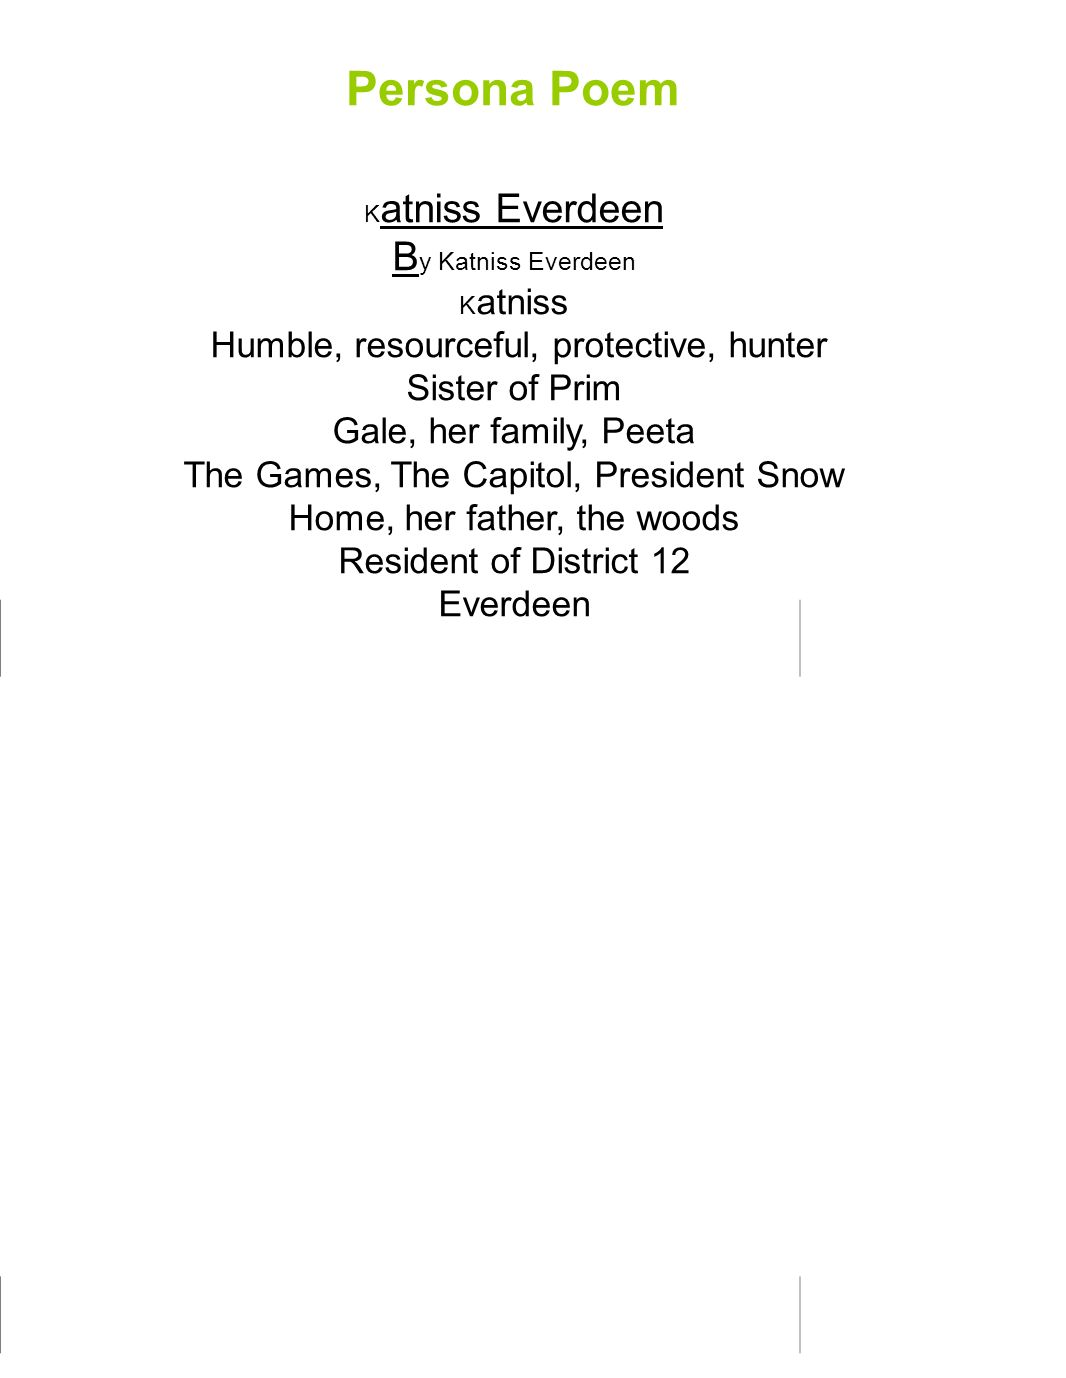 Persona Poem By Katniss Everdeen